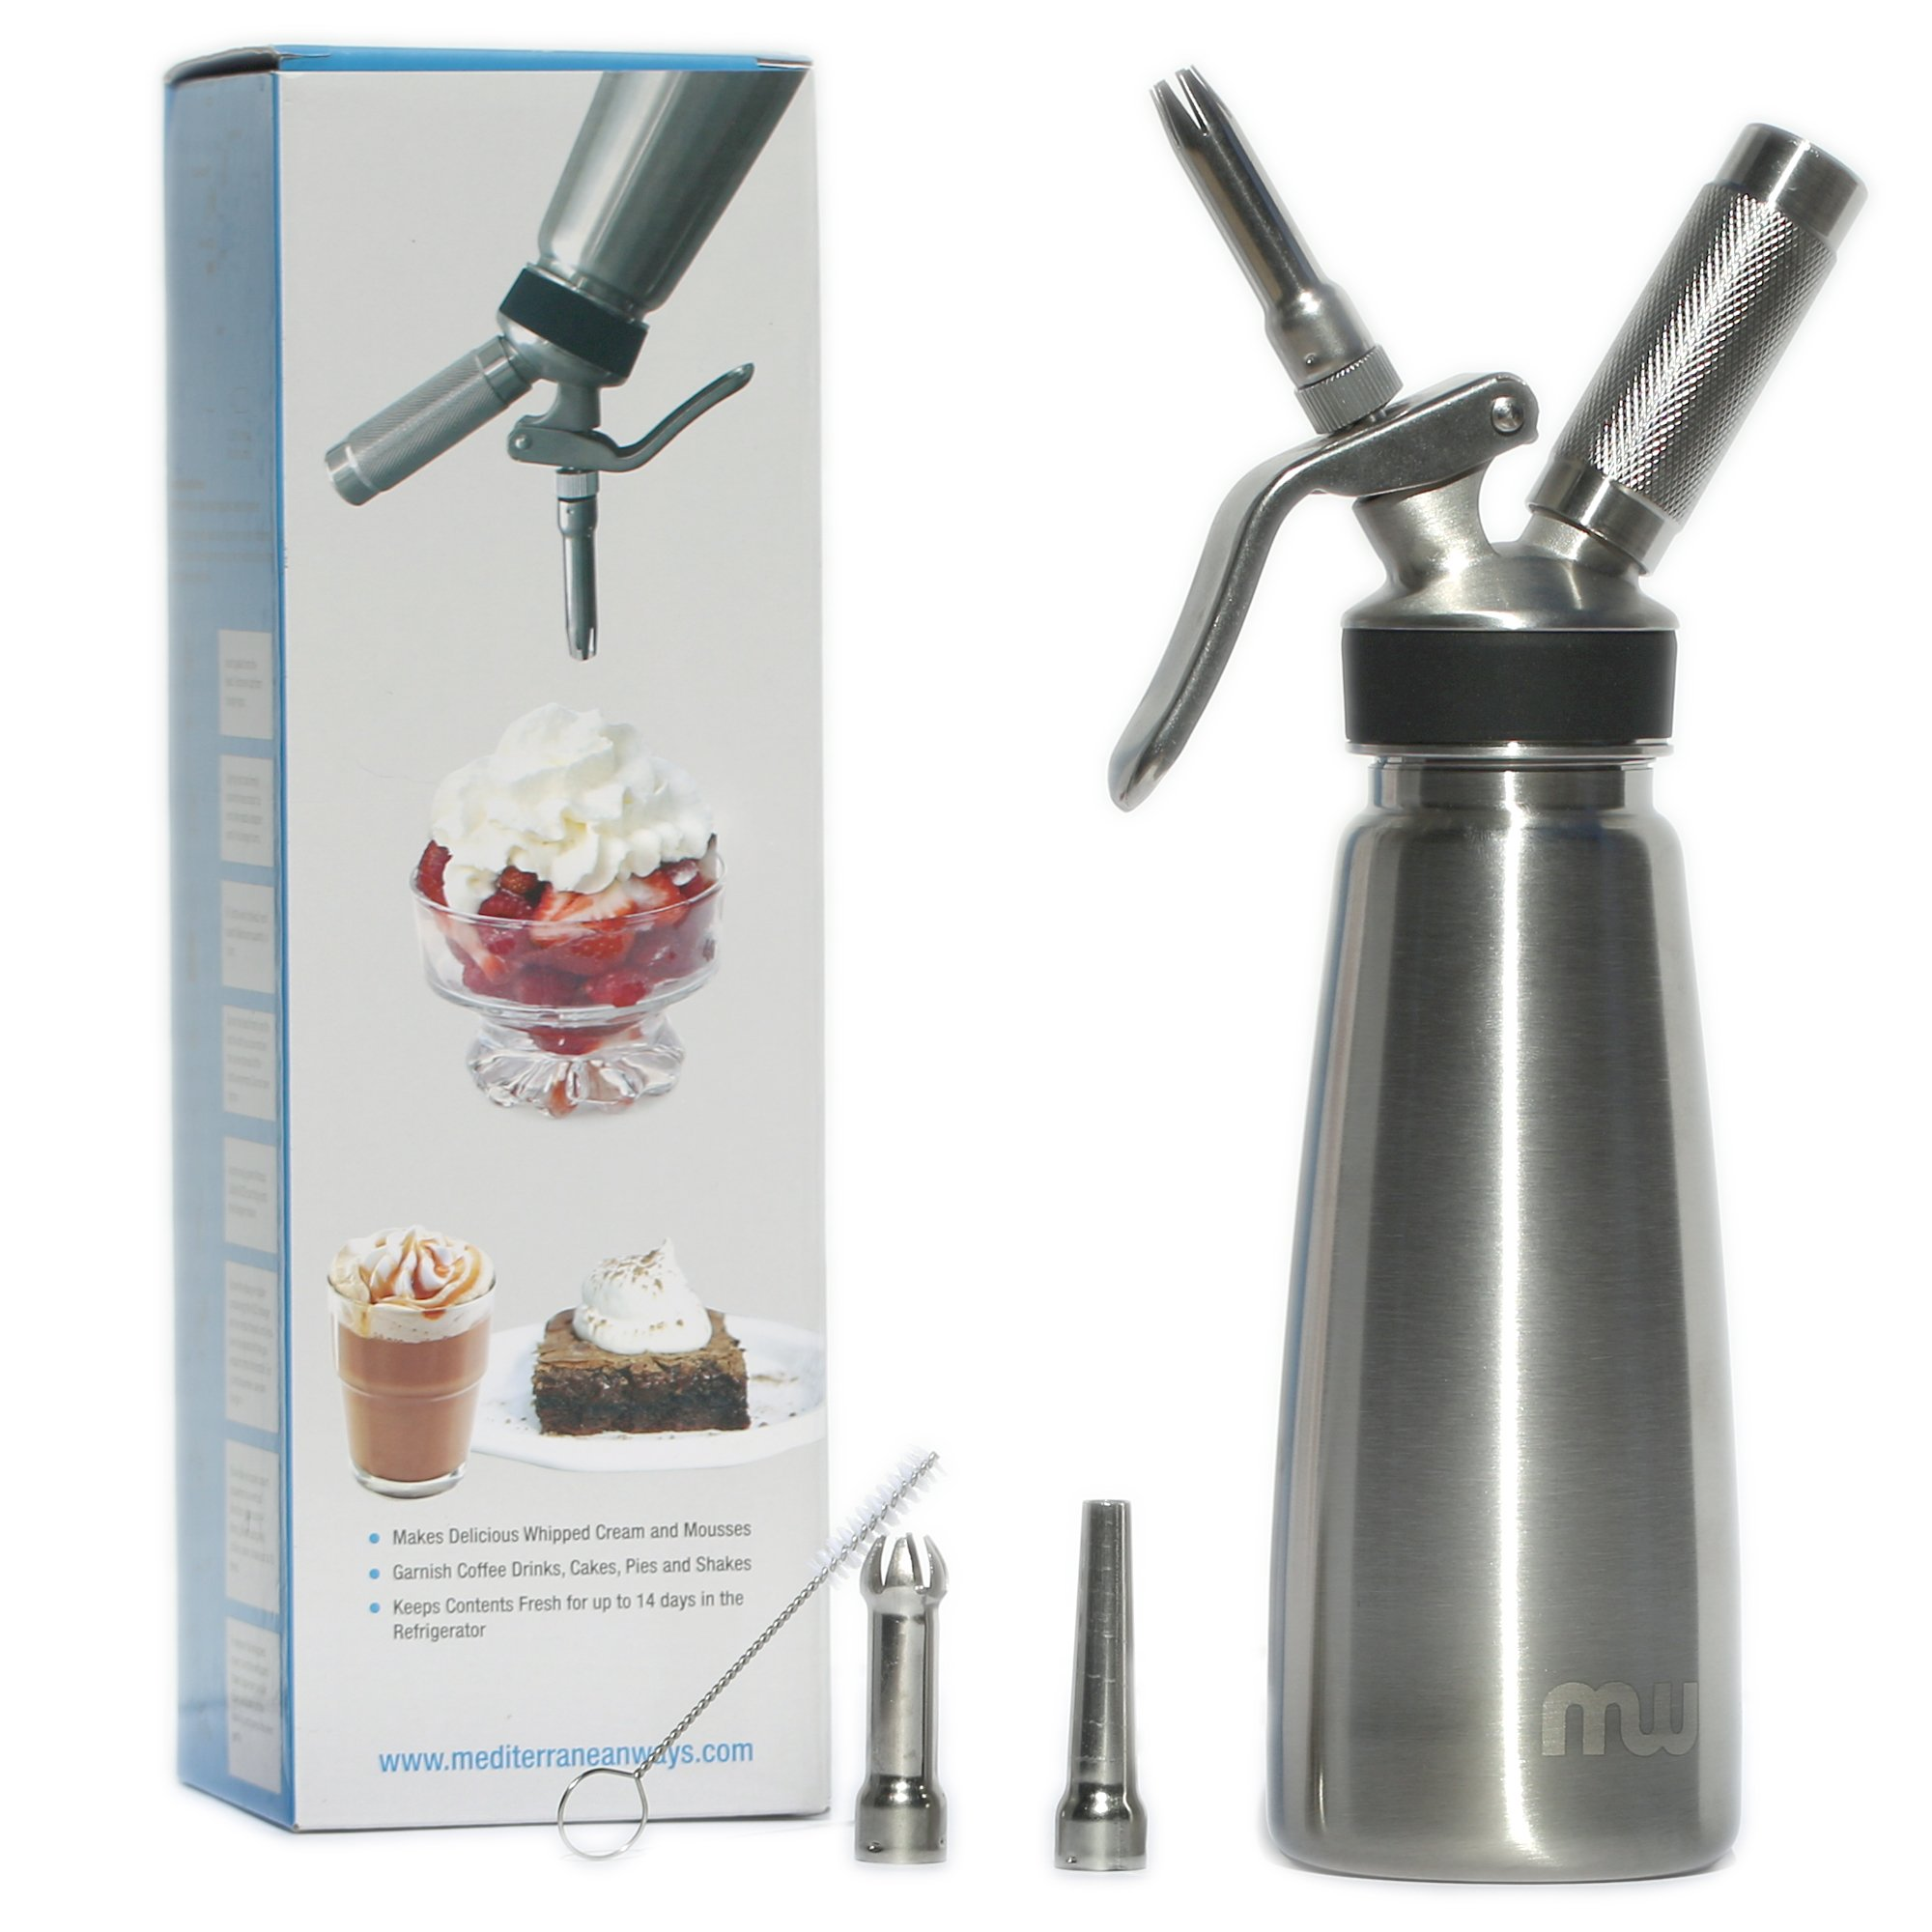 Professional Grade 1 Pint Whipped Cream Dispenser - 100% Stainless Steel Whipped Cream Maker Includes 3 Decorating Tips - No Plastic Parts